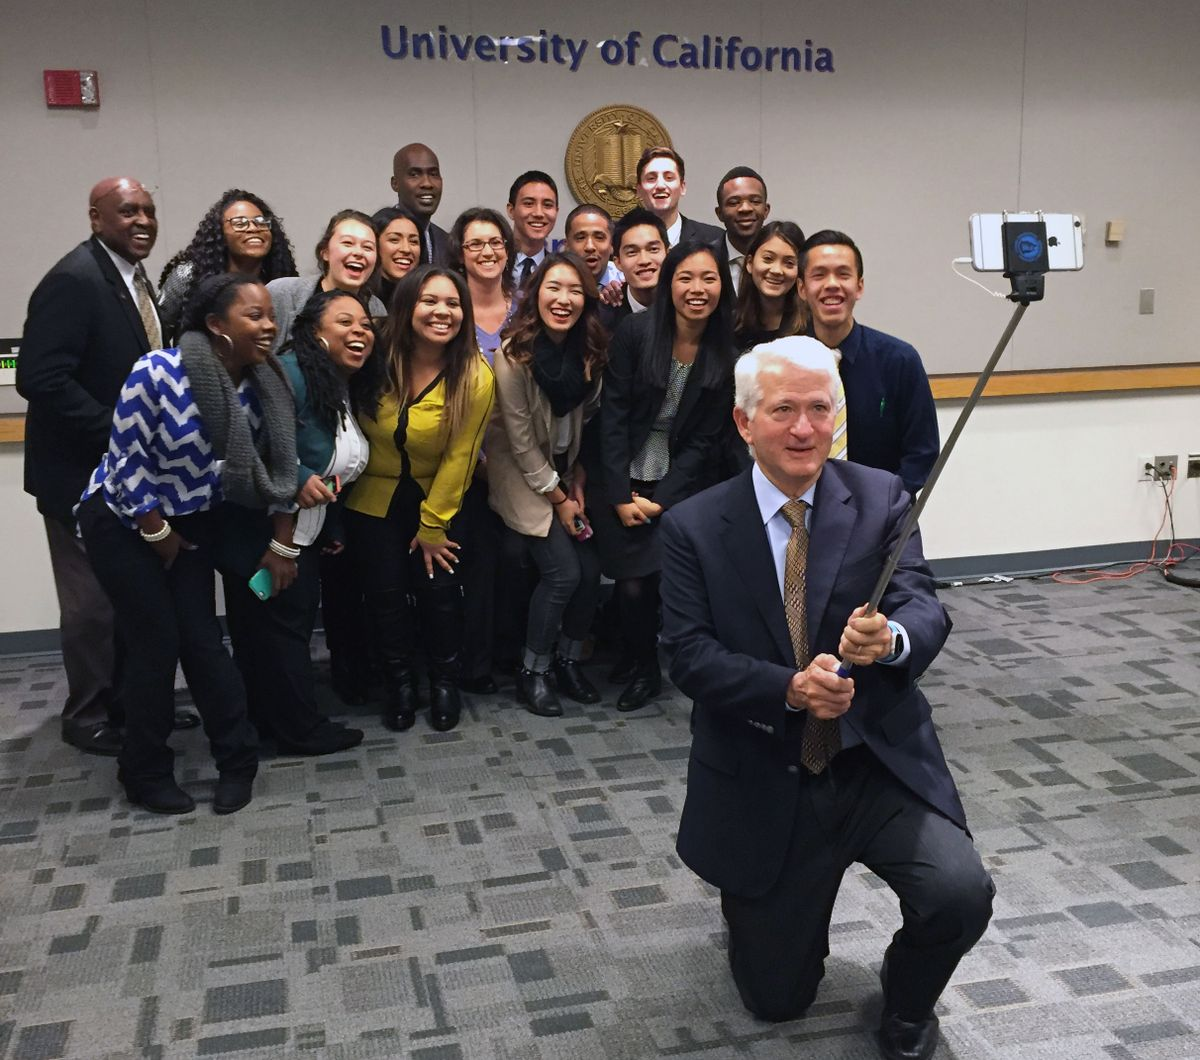 UCLA Chancellor Gene Block takes a selfie with delegates to Washington, D.C.